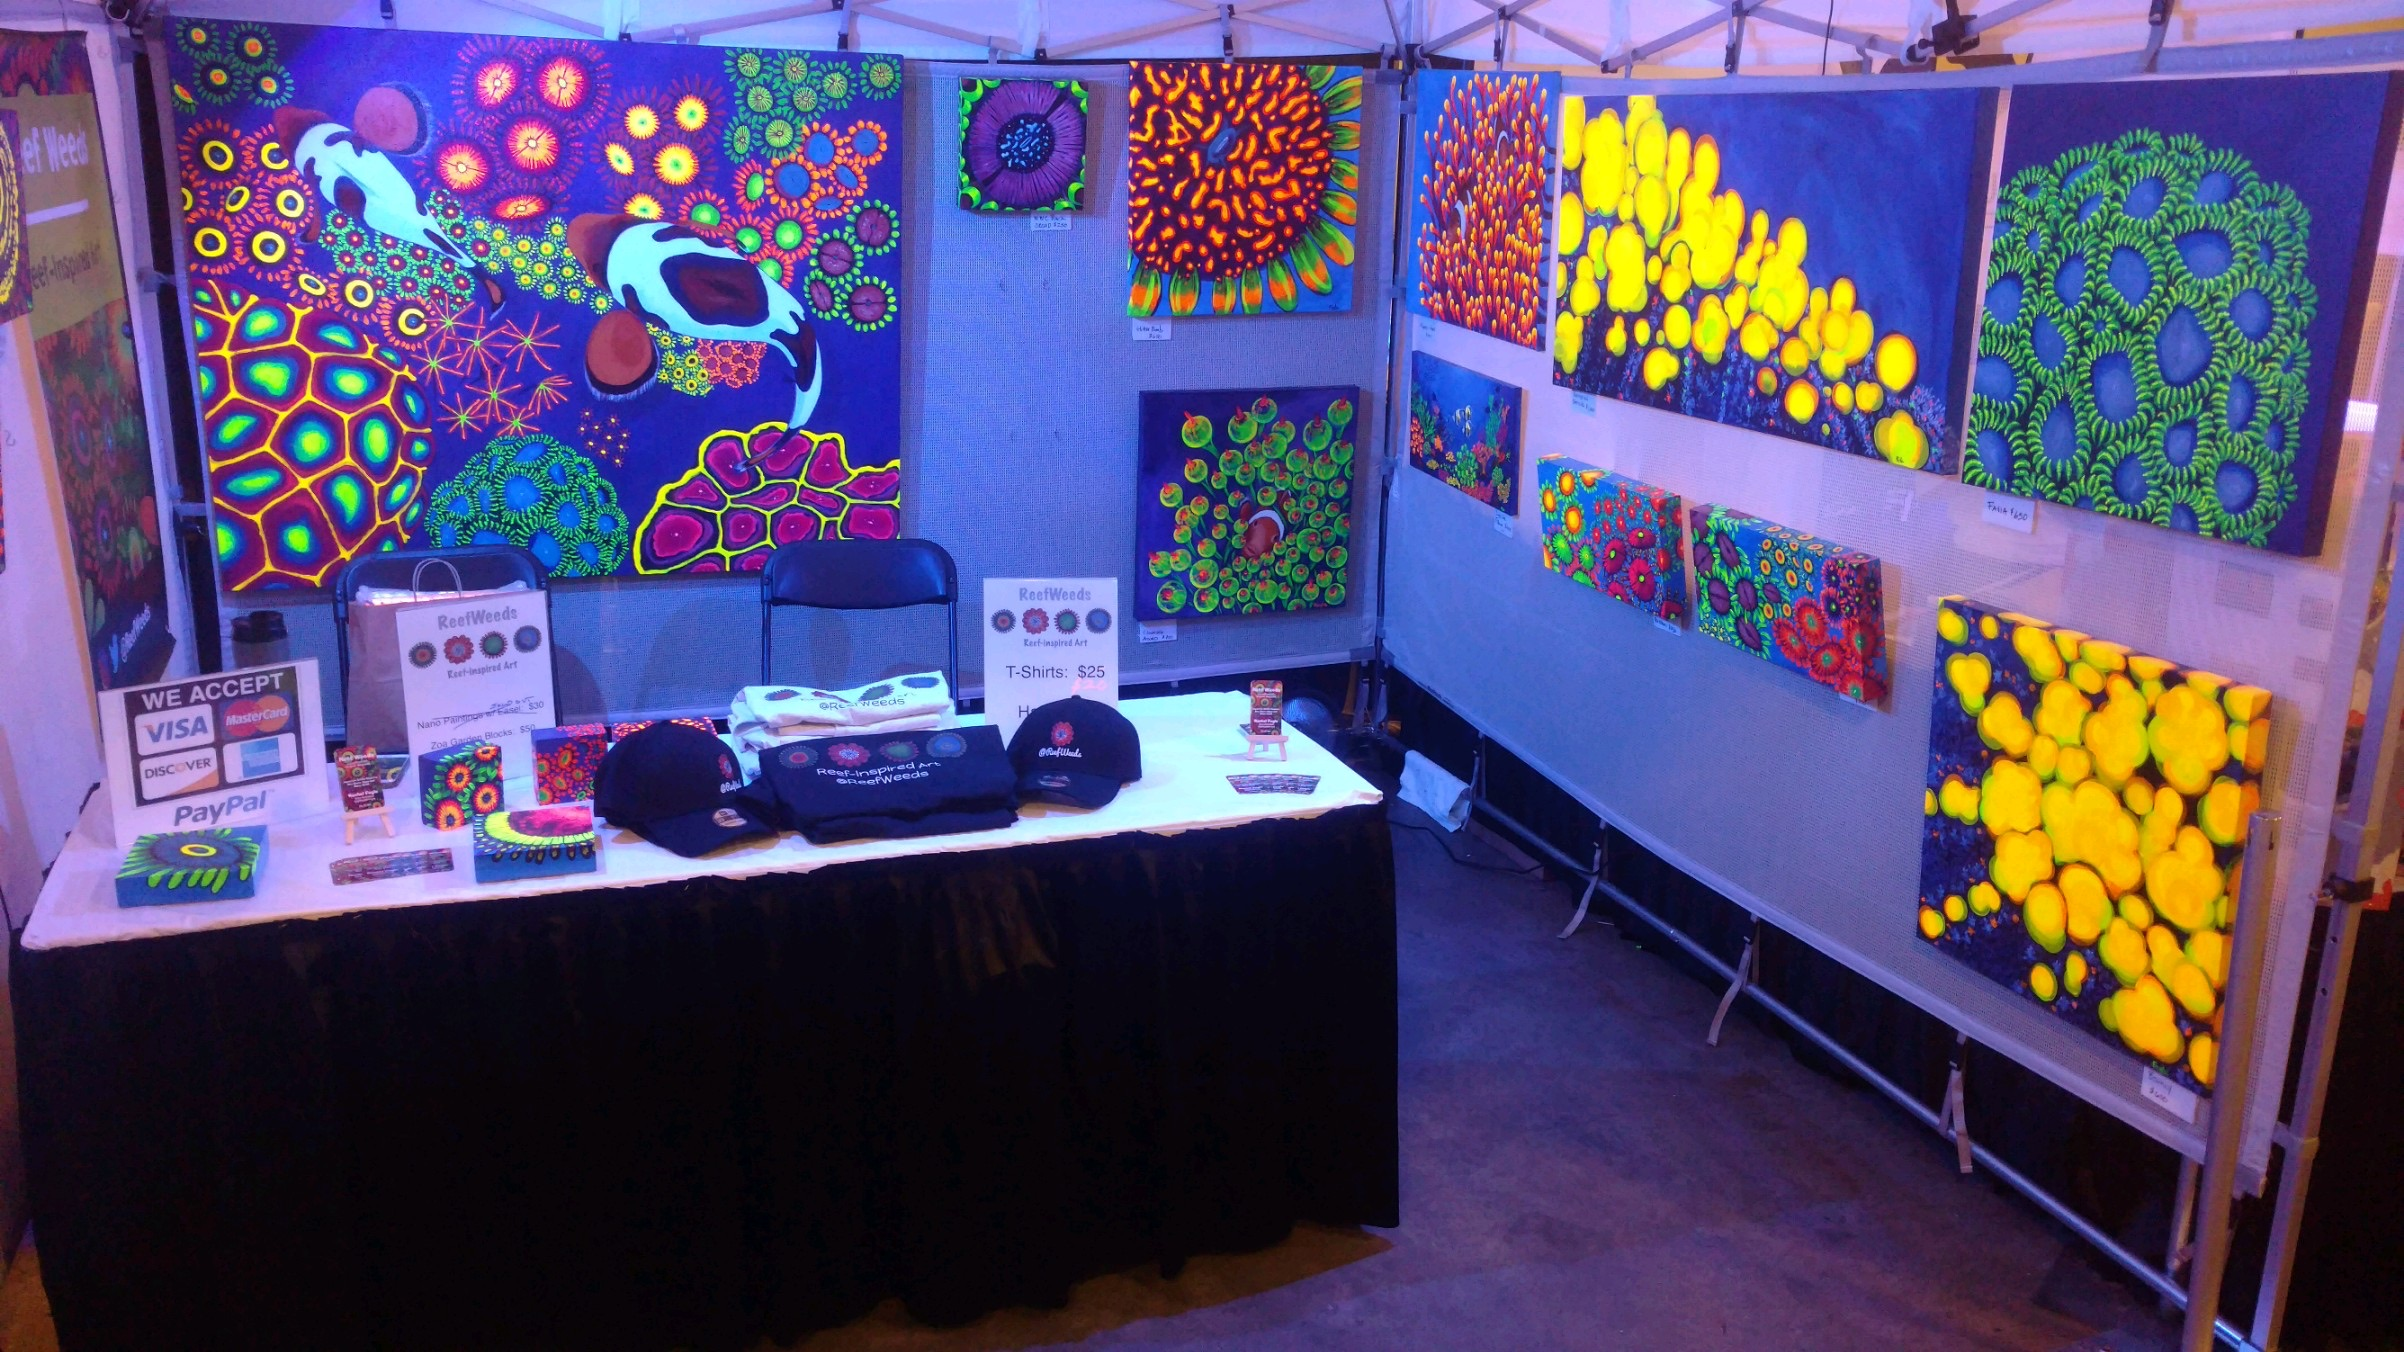 The ReefWeeds booth at Reef-A-Palooza New York